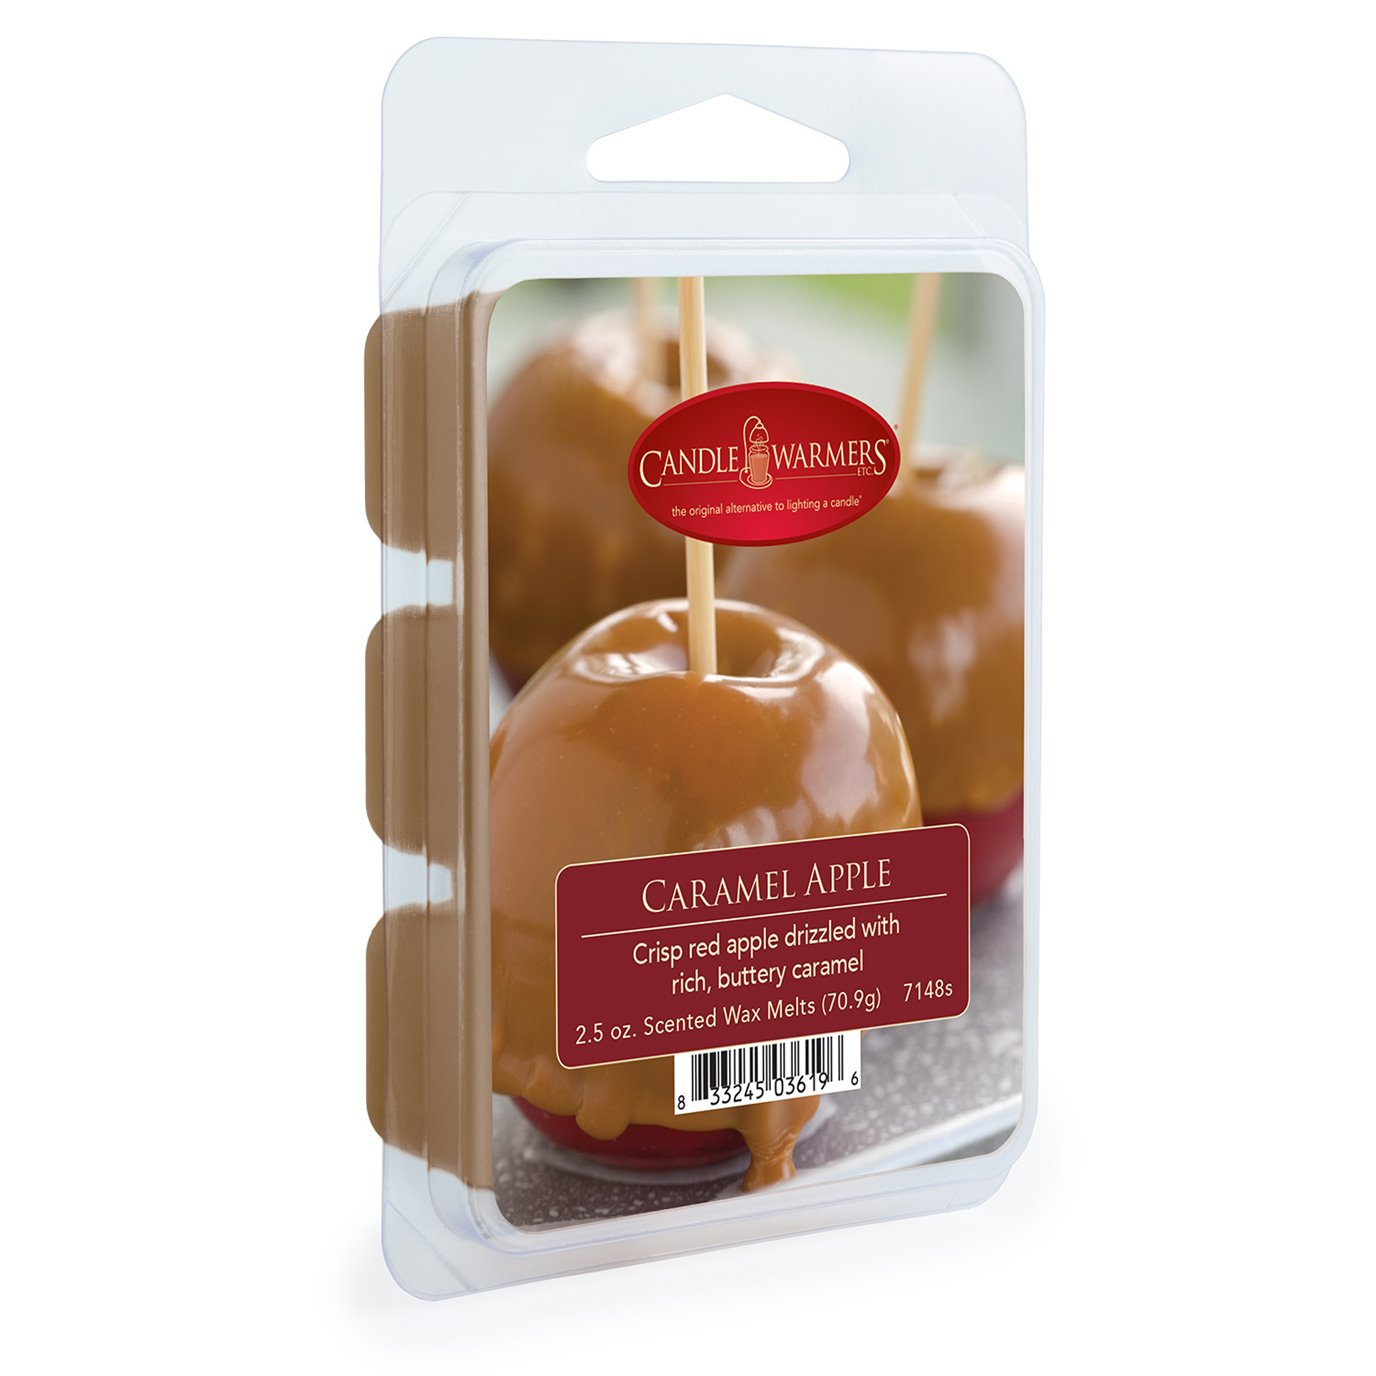 Caramel Apple Wax Melts by Candle Warmers 2.5 oz